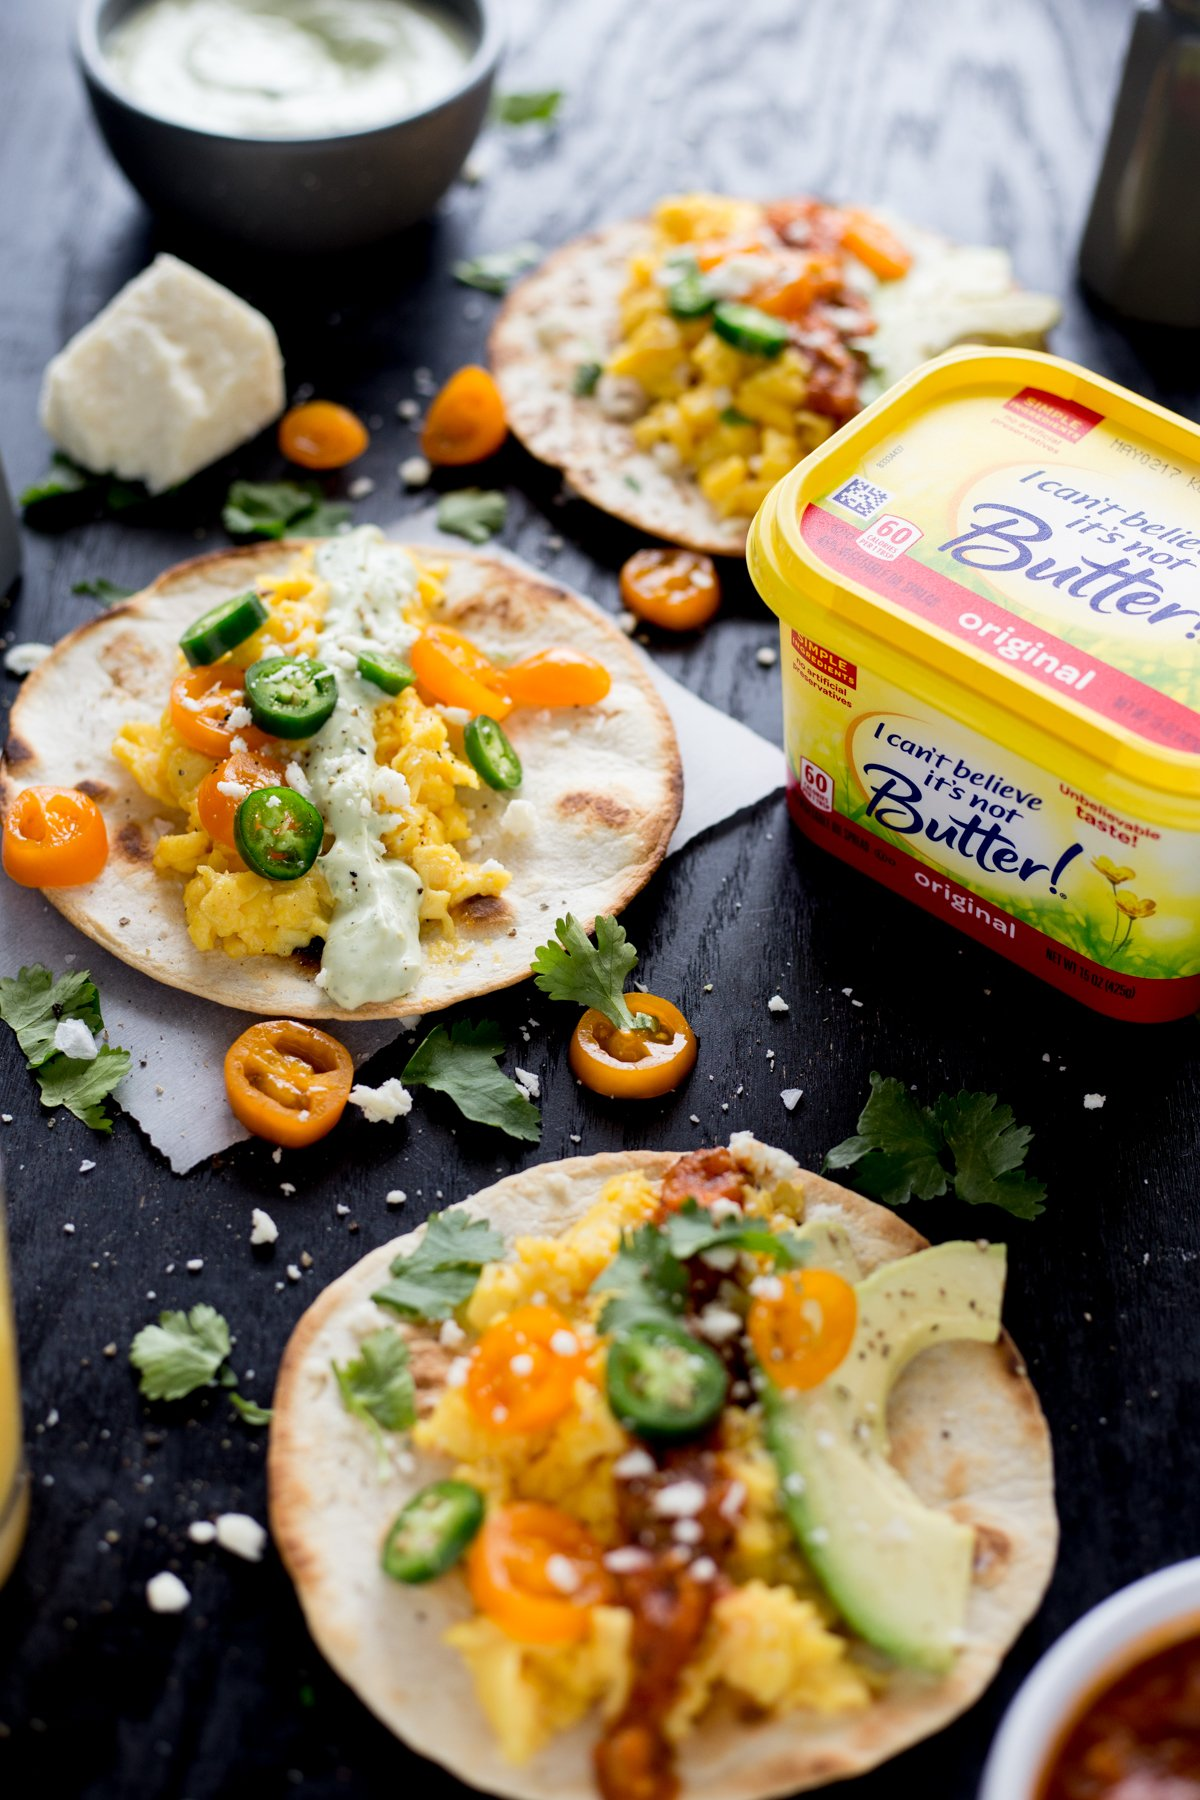 Breakfast recipes, easy and in a hurry, cannot be beat with these amazing Mexican breakfast tacos! Two blender sauces, lots of salty cheese, and fresh produce FTW! | asimplepantry.com